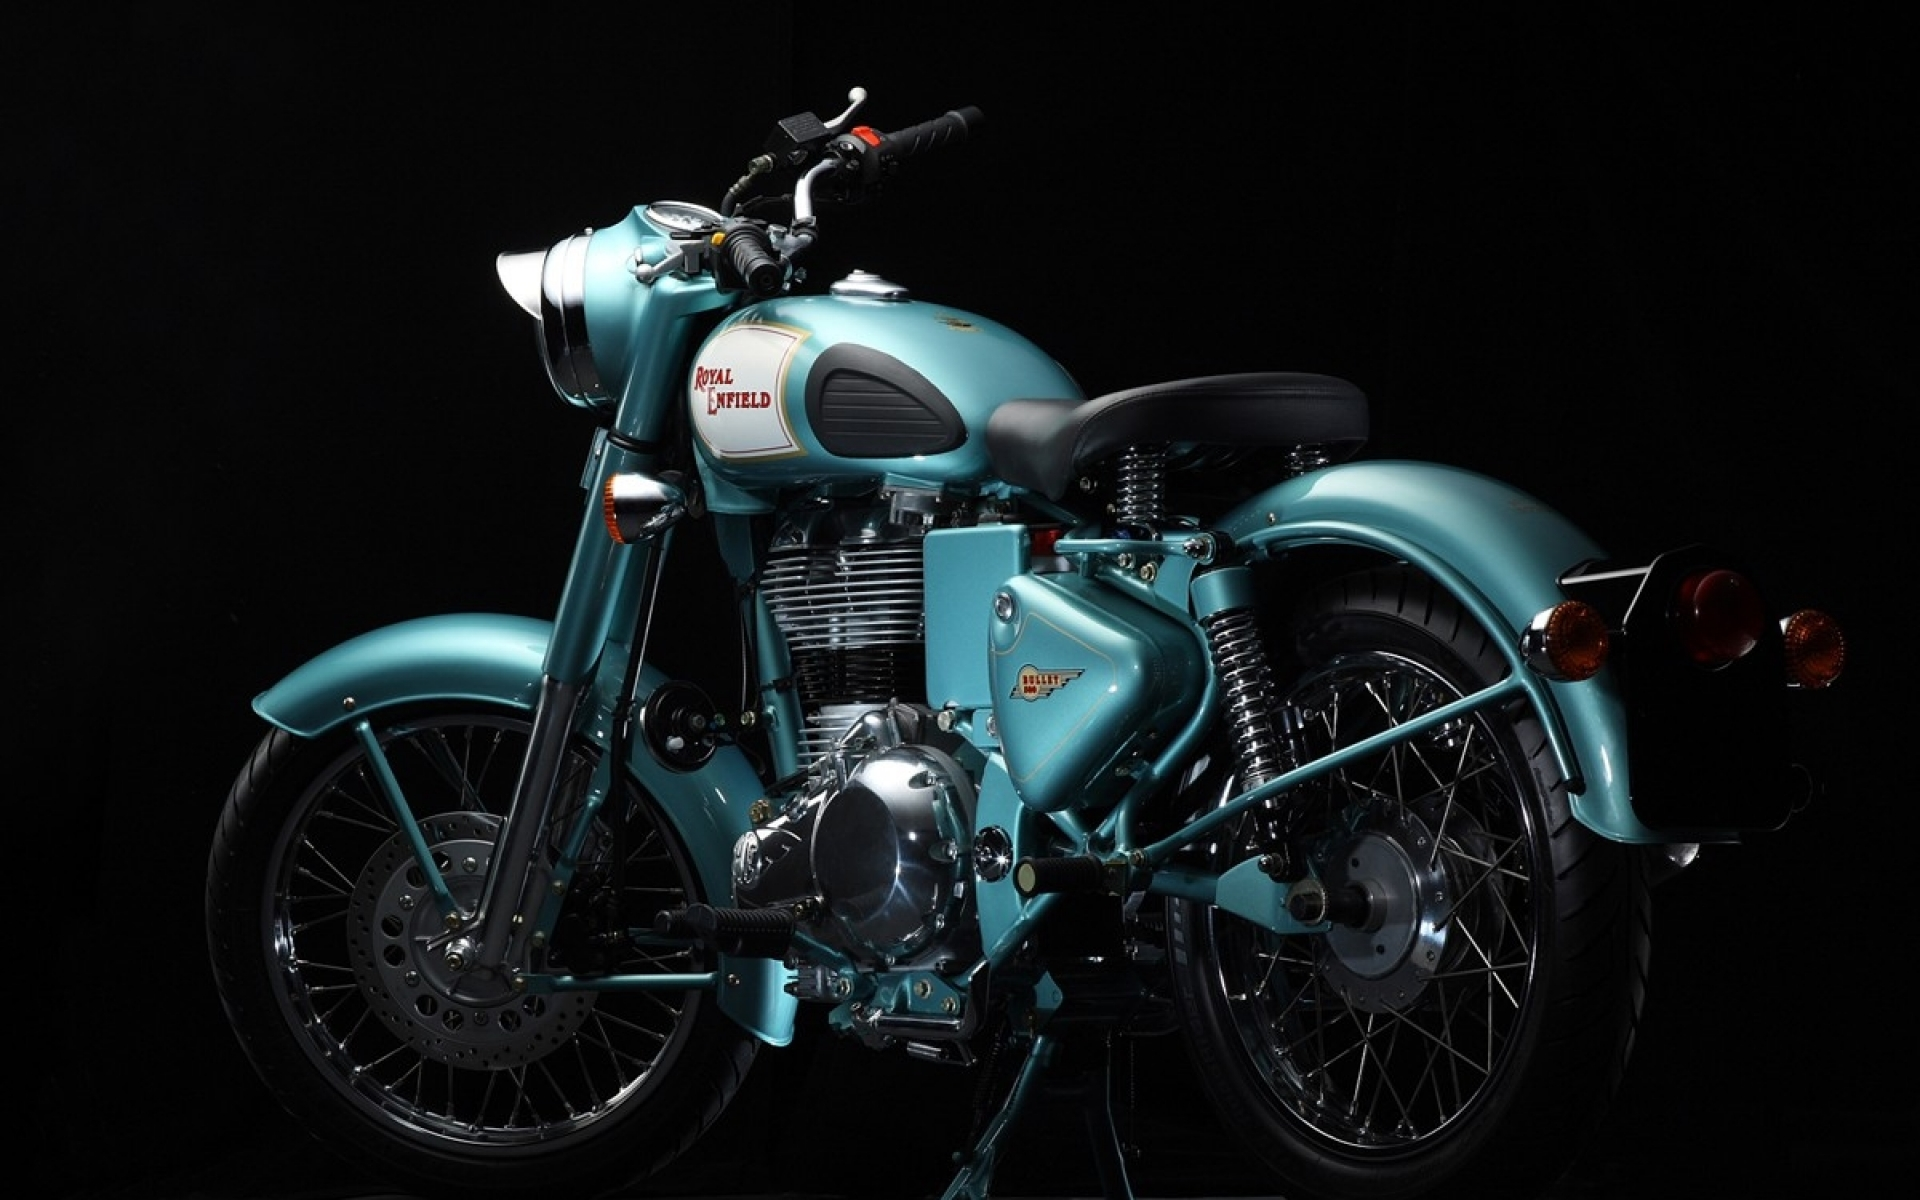 1 Royal Enfield Bullet 500 Fonds D 233 Cran Hd Arri 232 Re